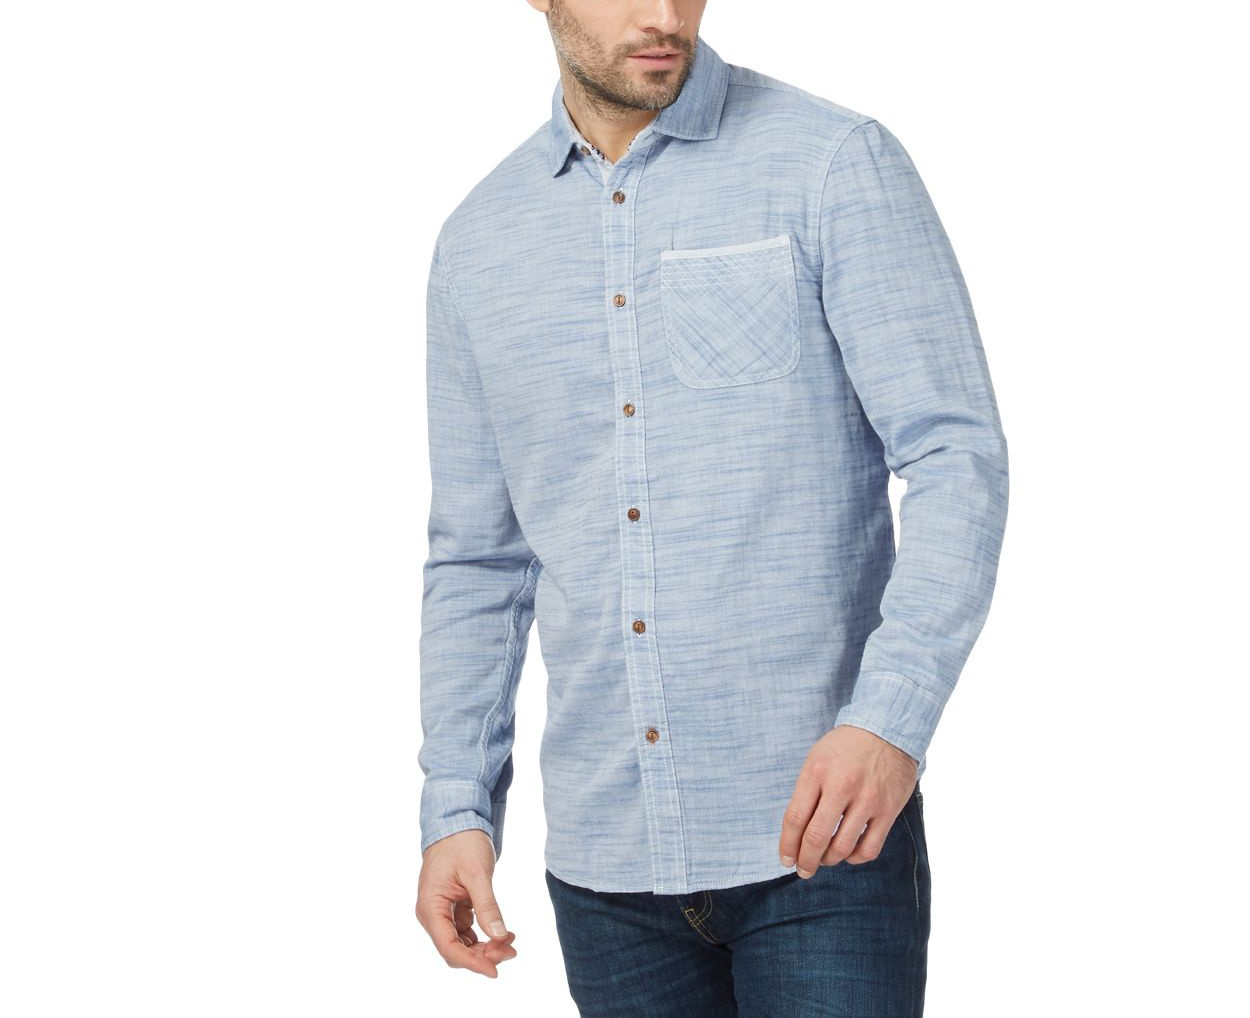 Mantaray Blue marl shirt